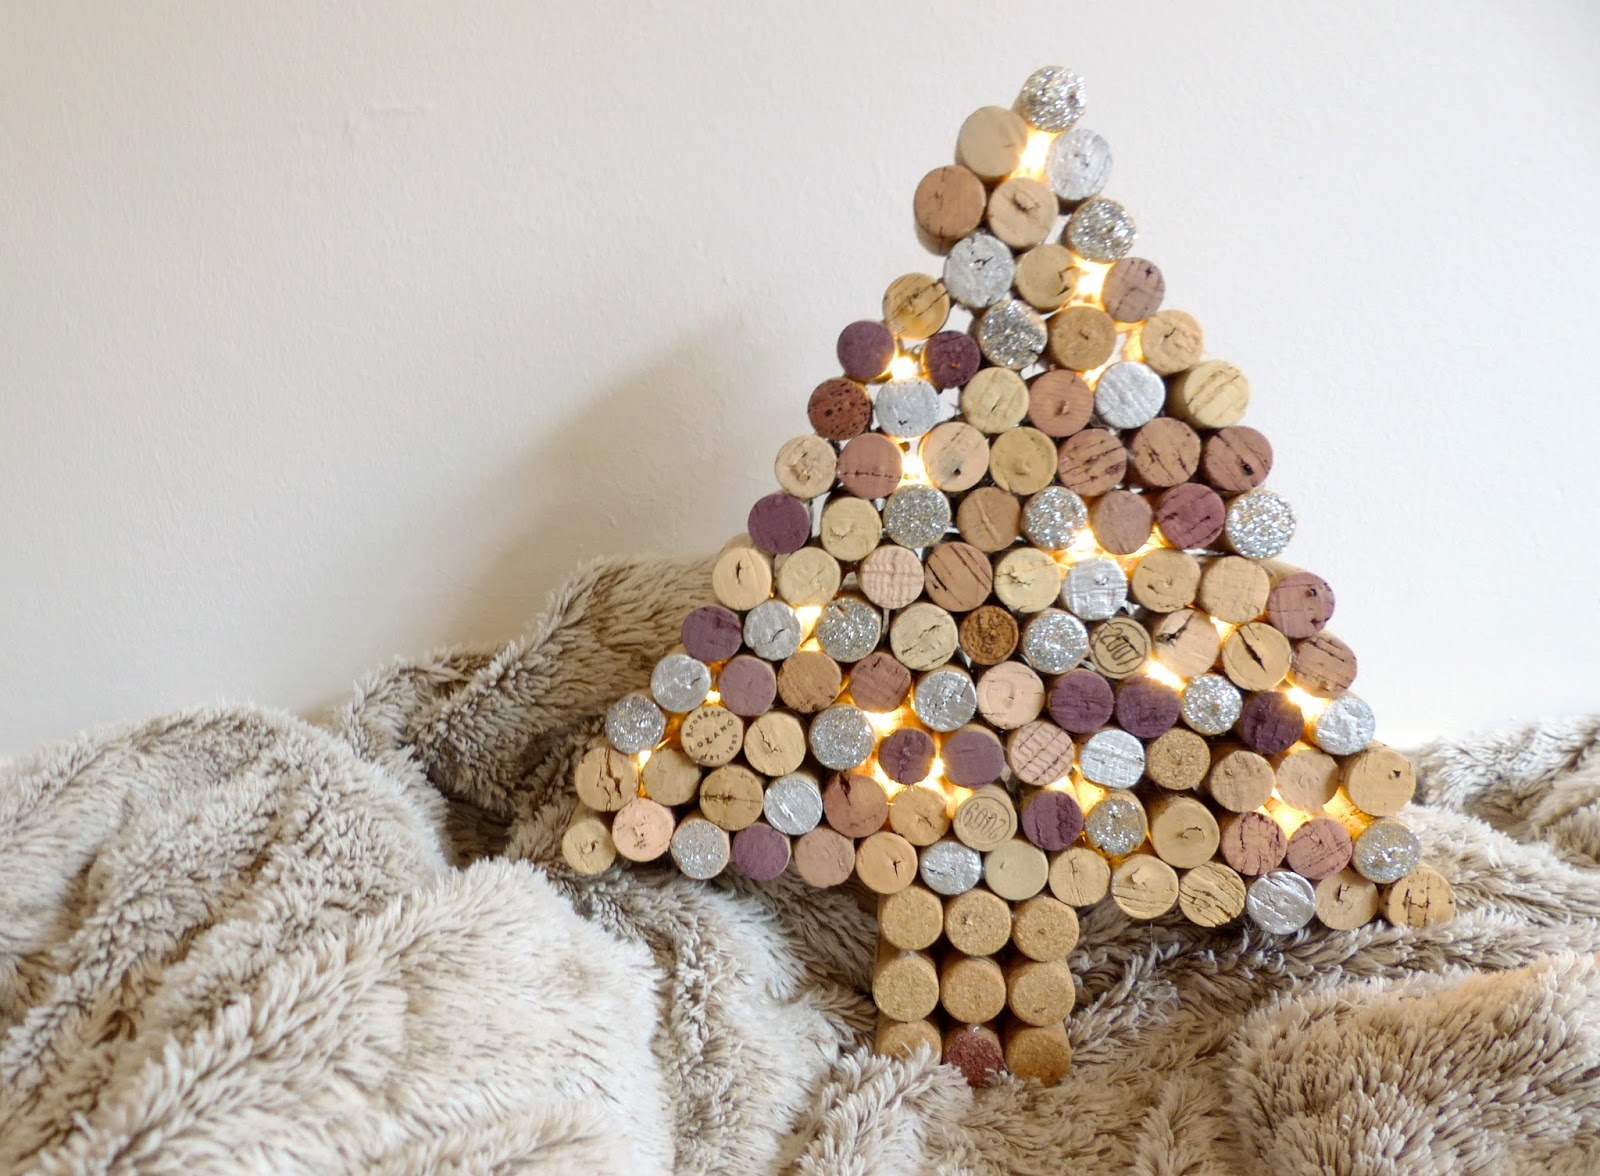 Diy sapin de no l en bouchons de li ge blog diy do it yourself jules coton - Sapin de noel diy ...